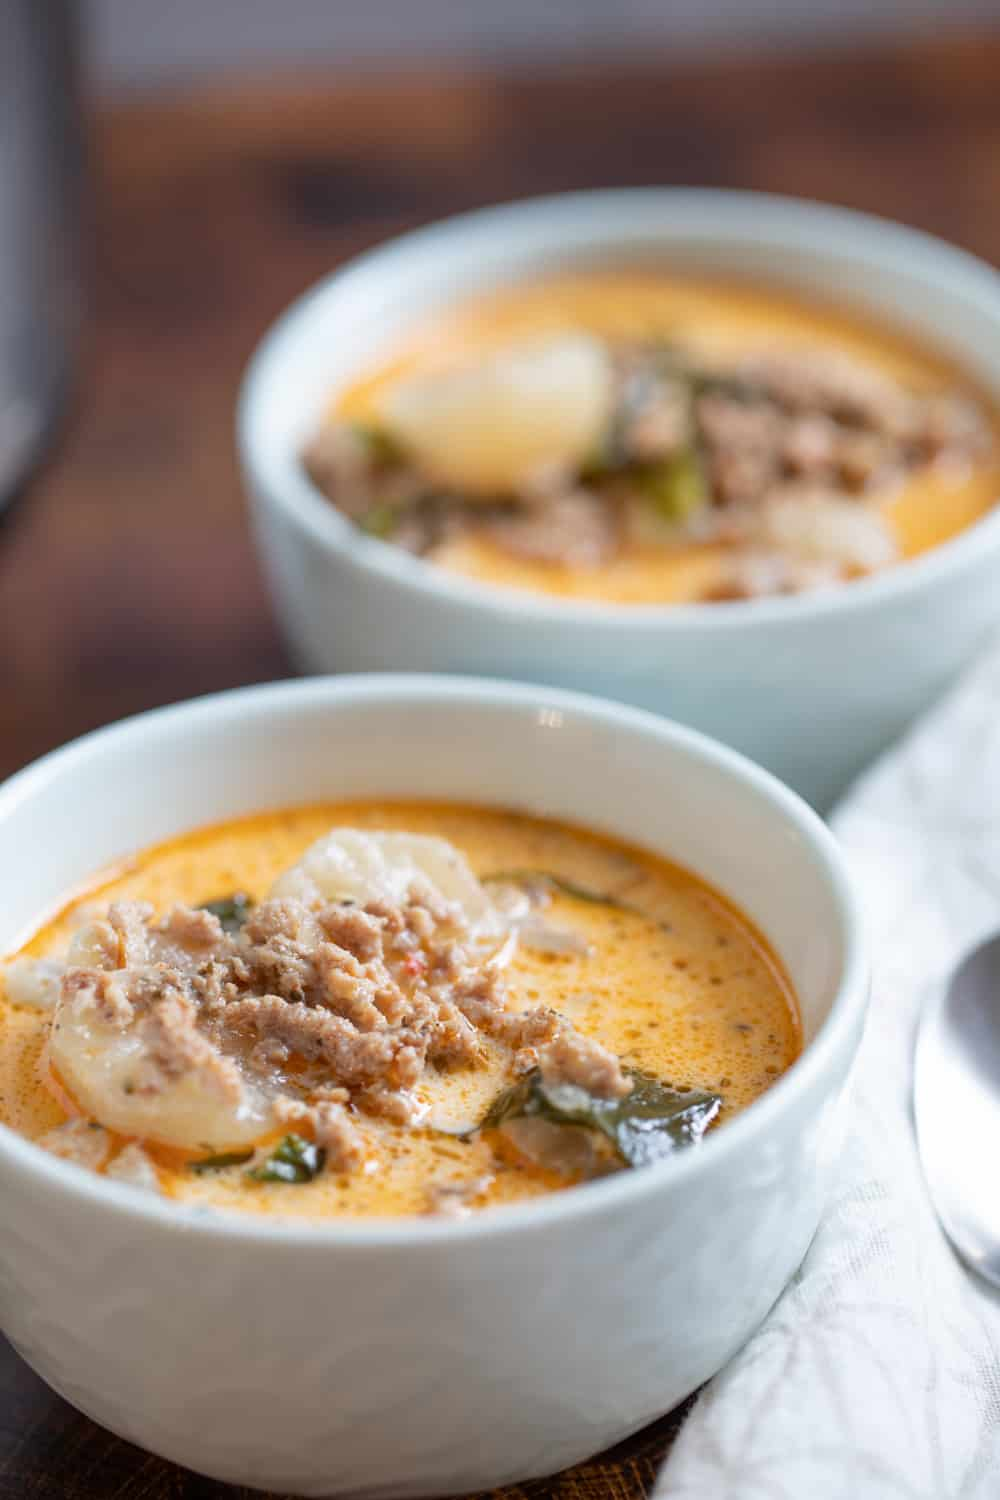 two bowls of keto friendly zuppa toscana soup